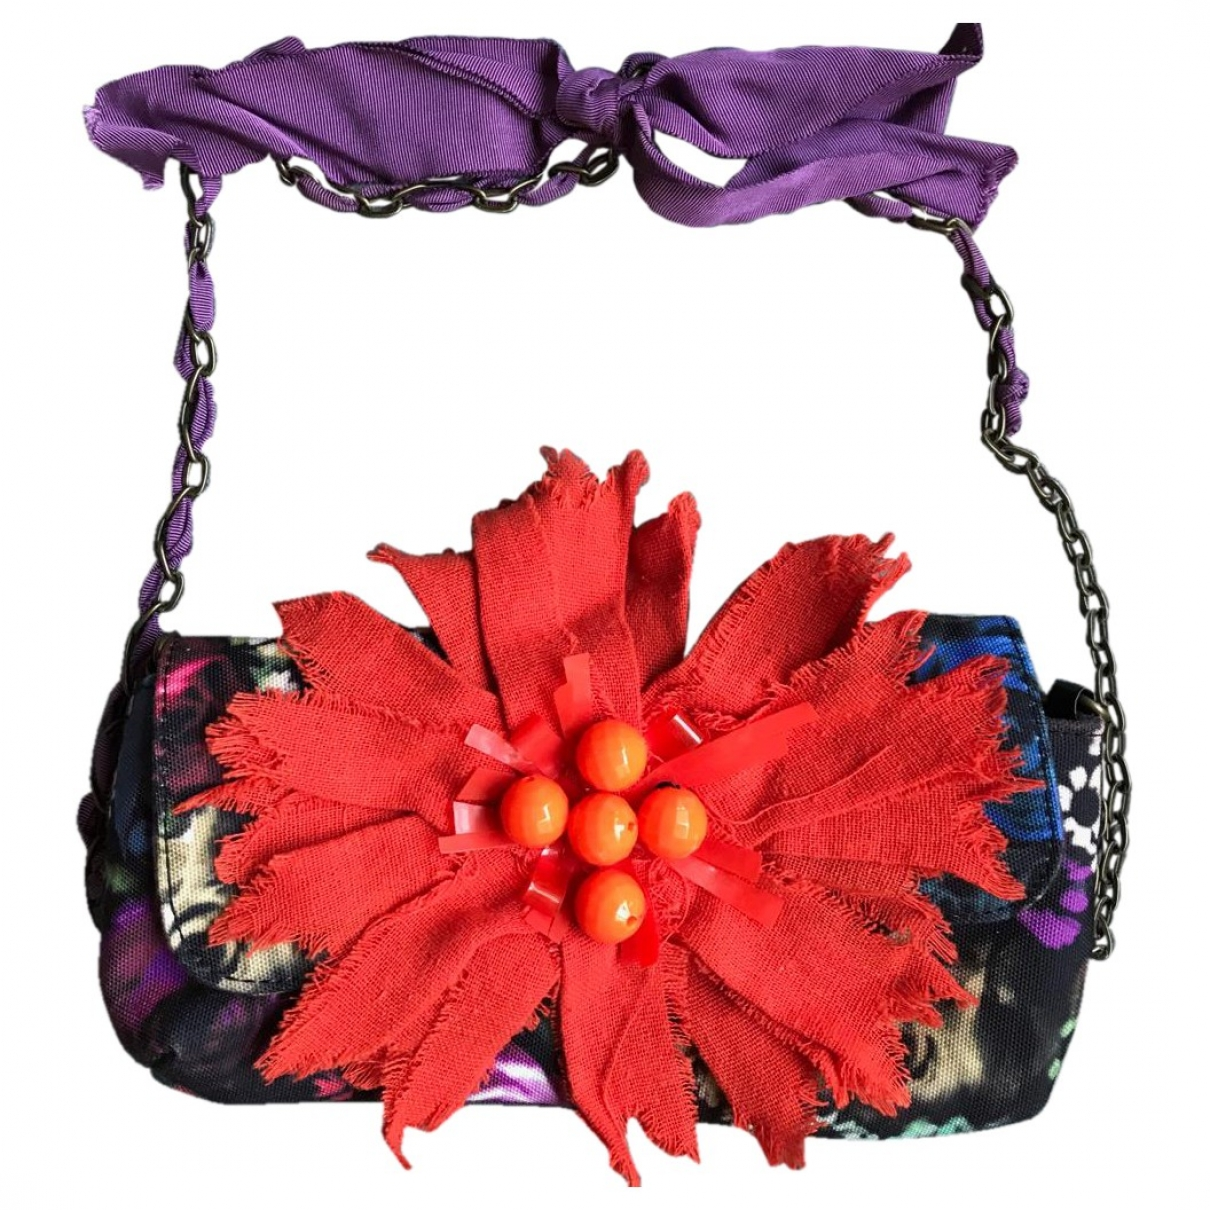 Bolsos clutch en Poliester Multicolor Lanvin For H&m